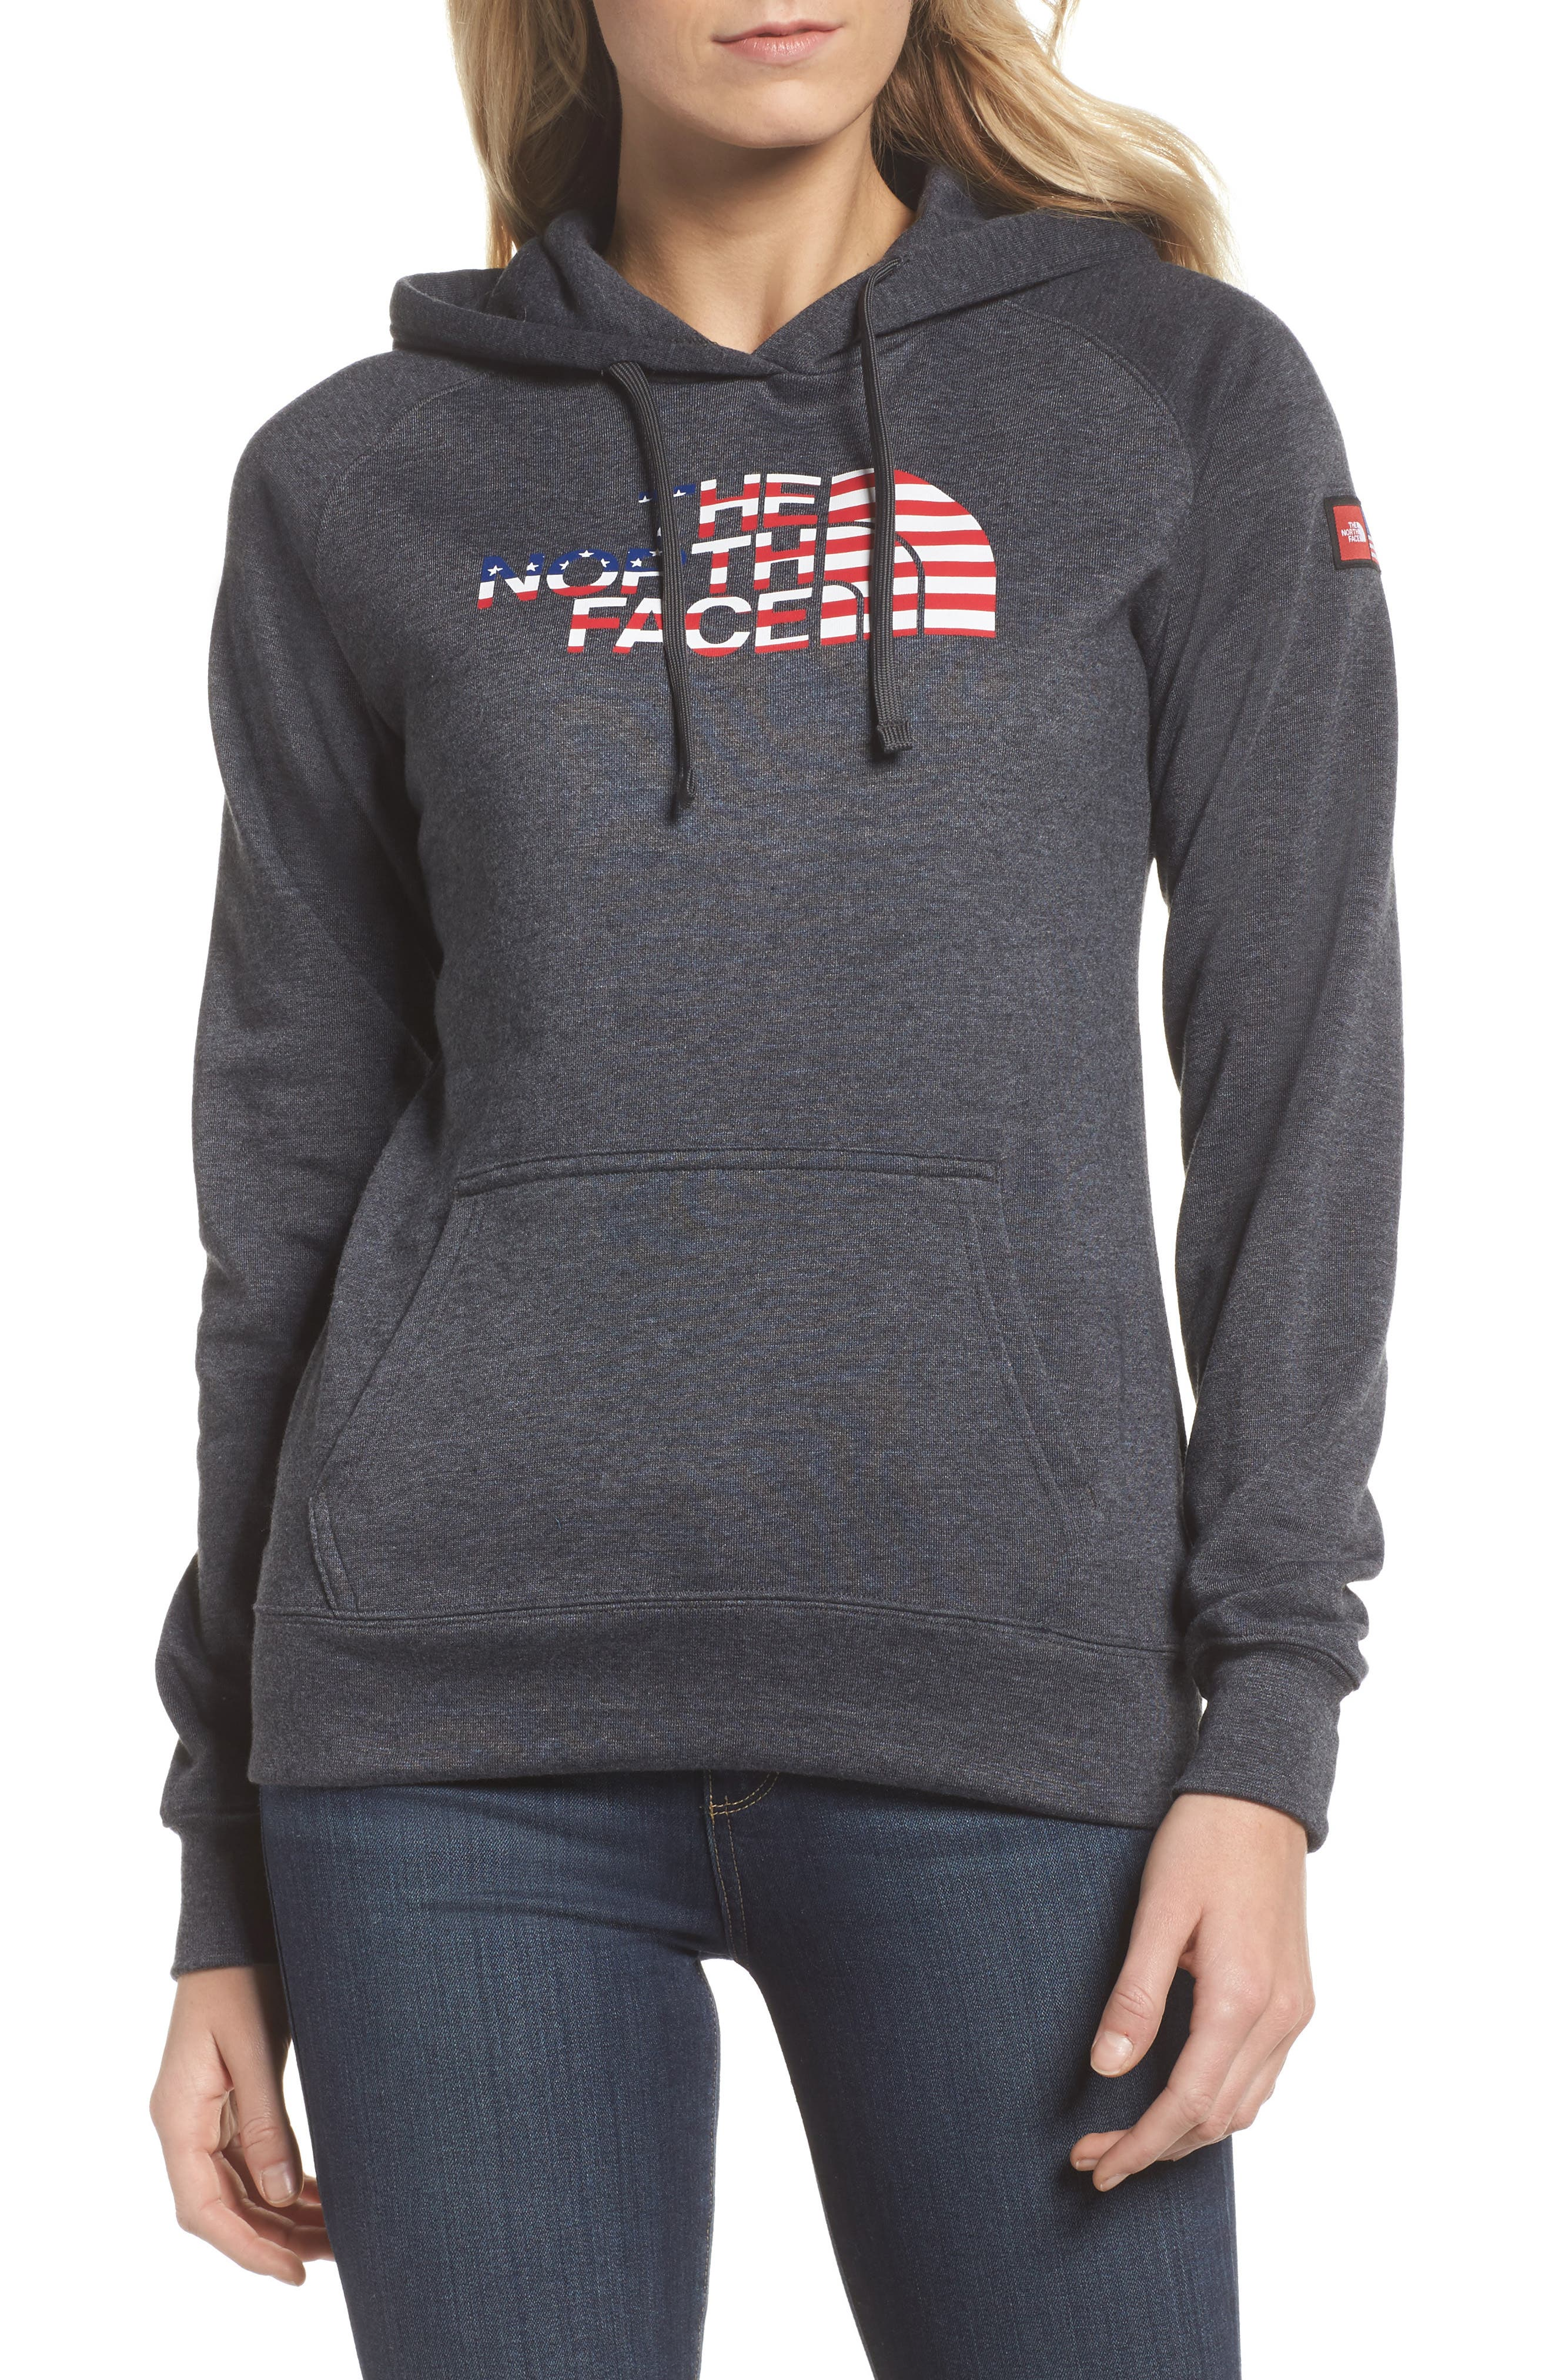 International Collection USA Pullover Hoodie,                             Main thumbnail 1, color,                             021